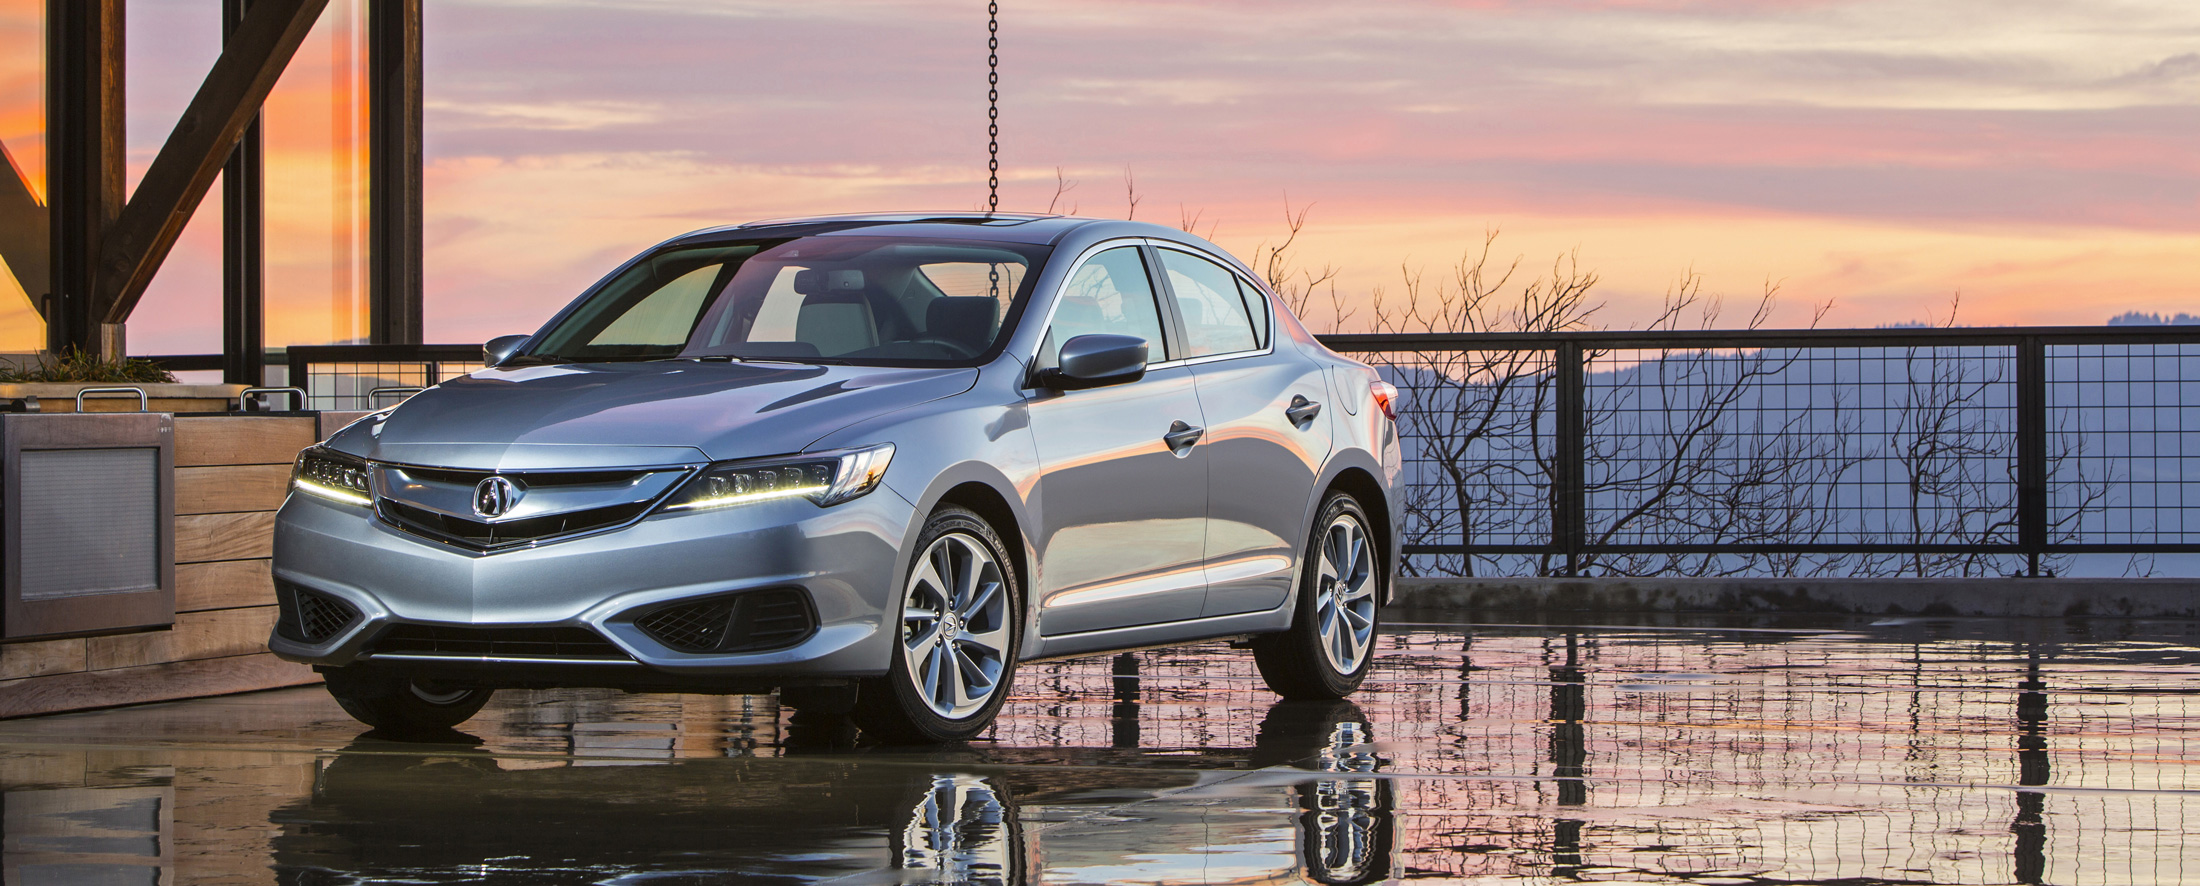 The Acura Ilx Is A 30000 Luxury Car That Isnt Really Advanced Sports Concept Bloomberg